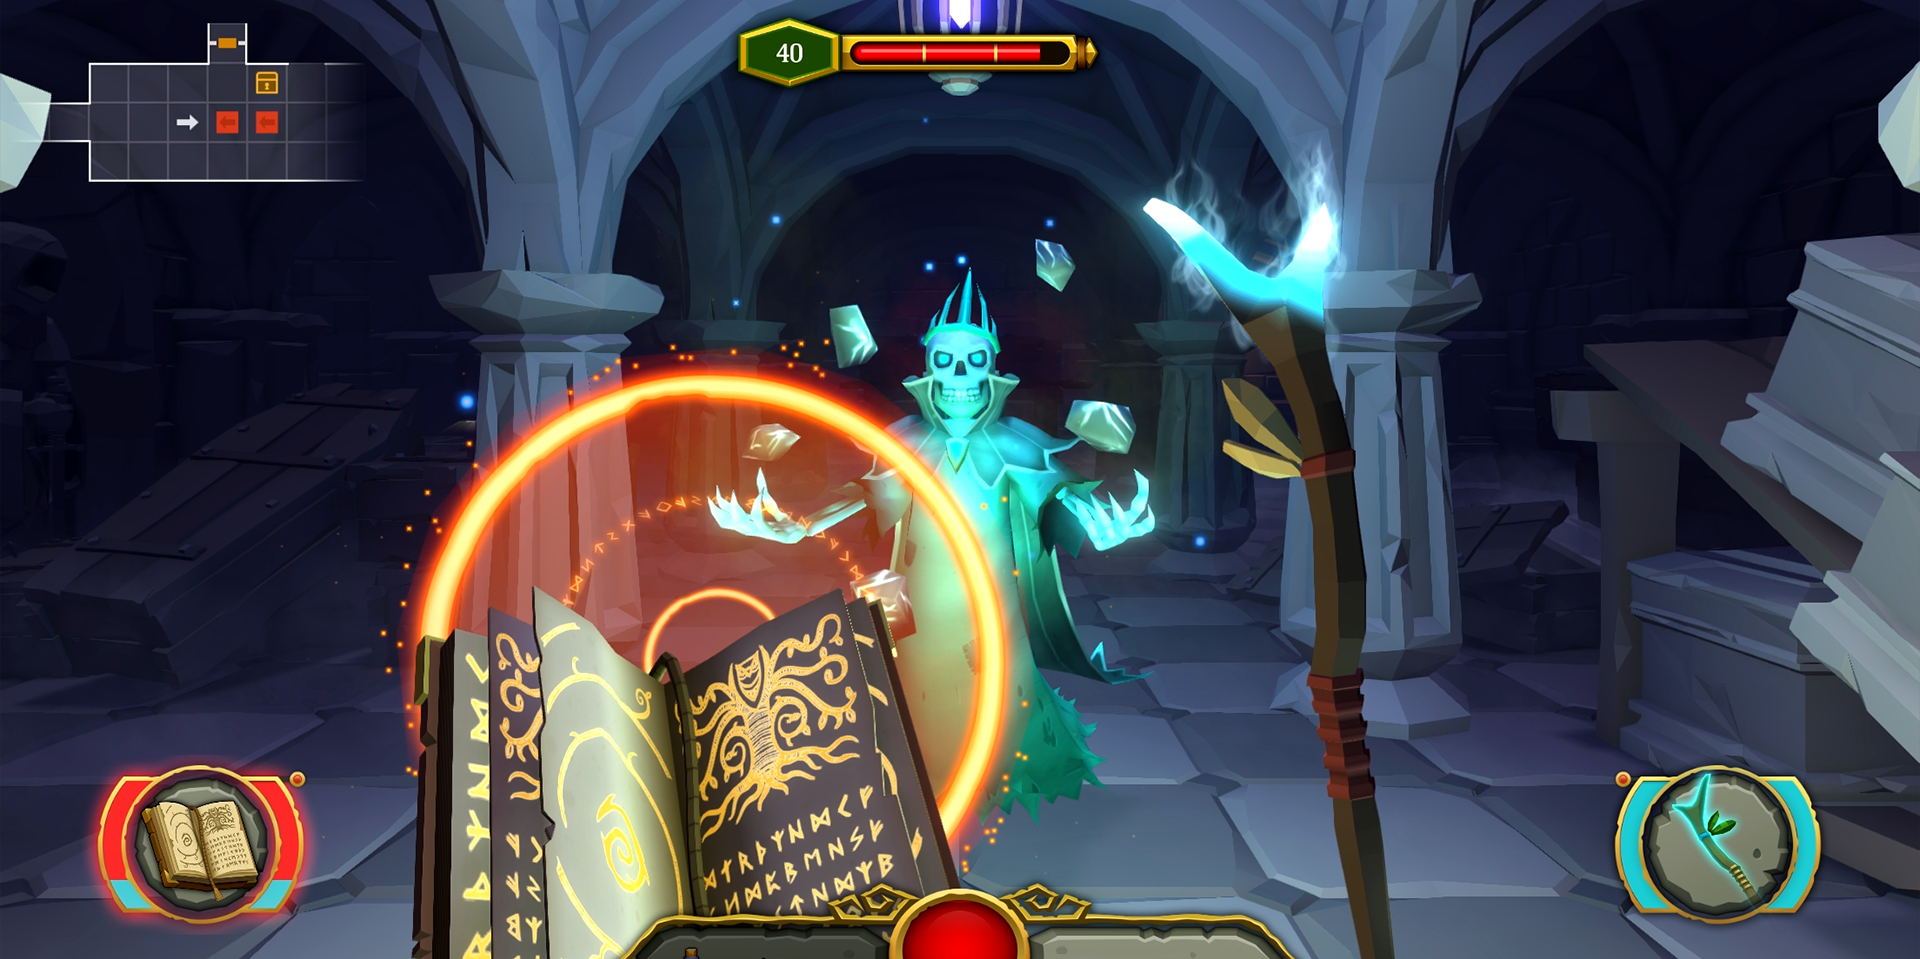 Towers of Everland, a stylish first-person dungeon crawler, is this week's Apple Arcade game